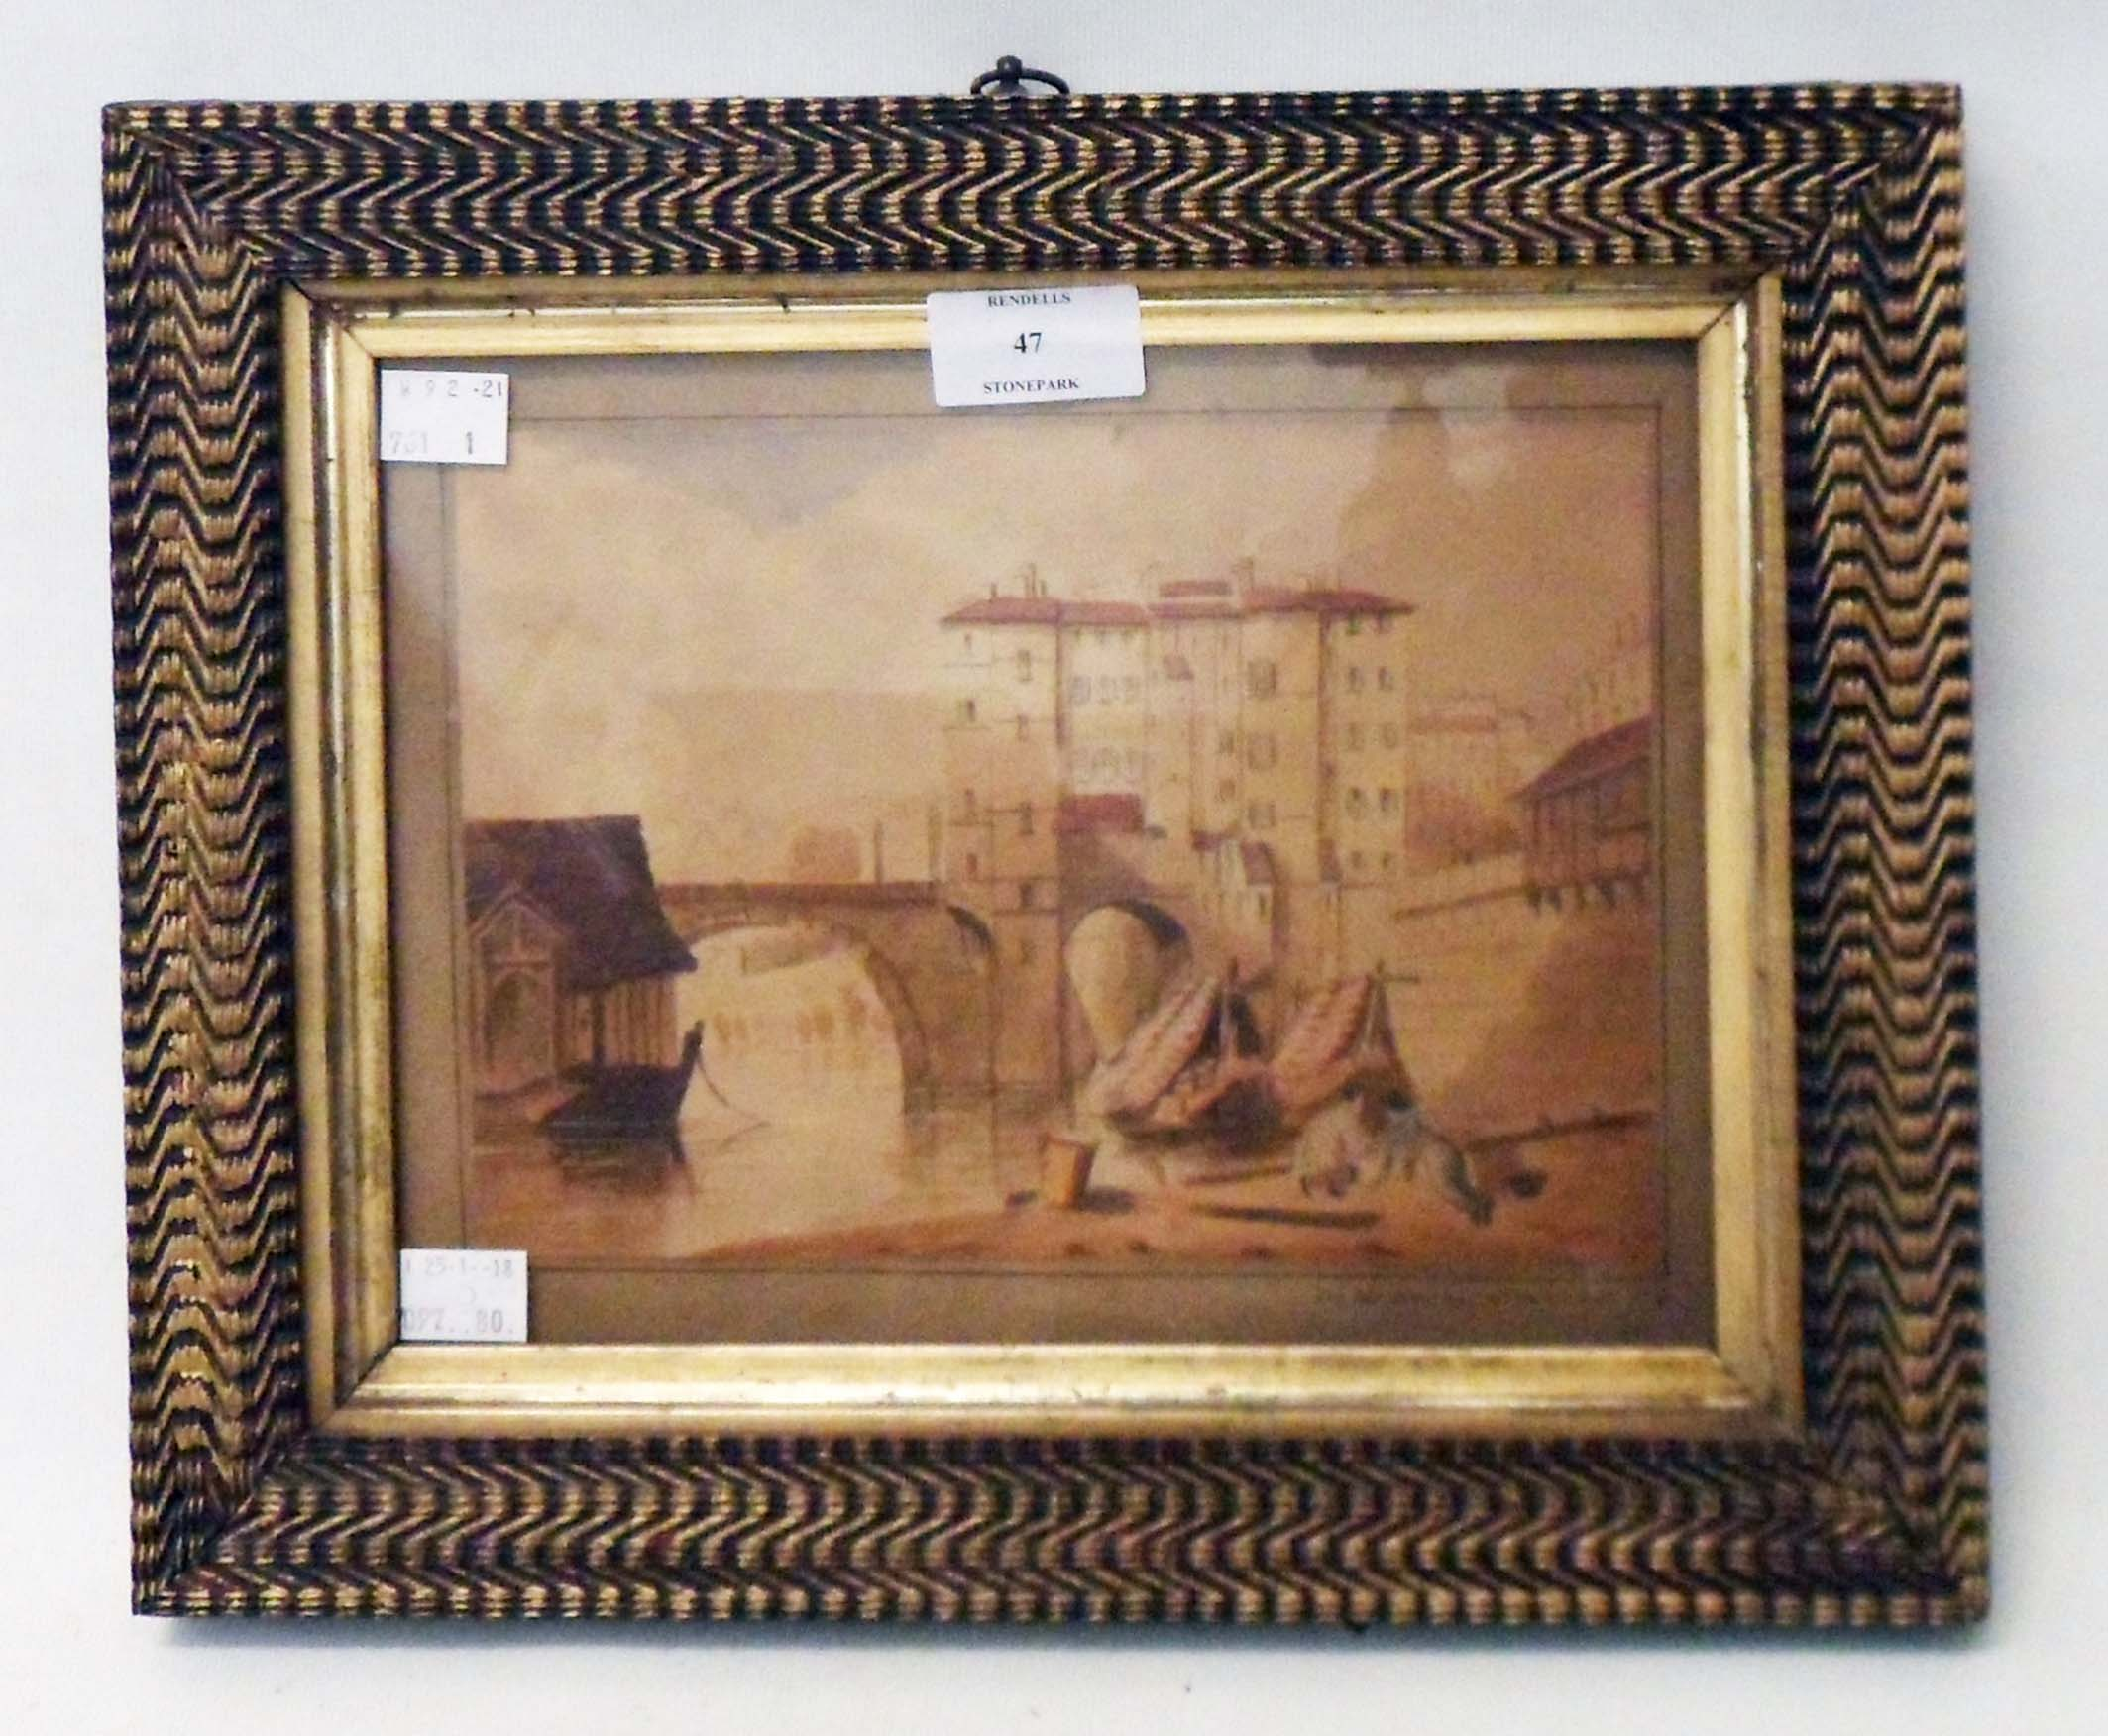 An ornate gilt framed 19th Century French scene watercolour, titled in English On the Soane (